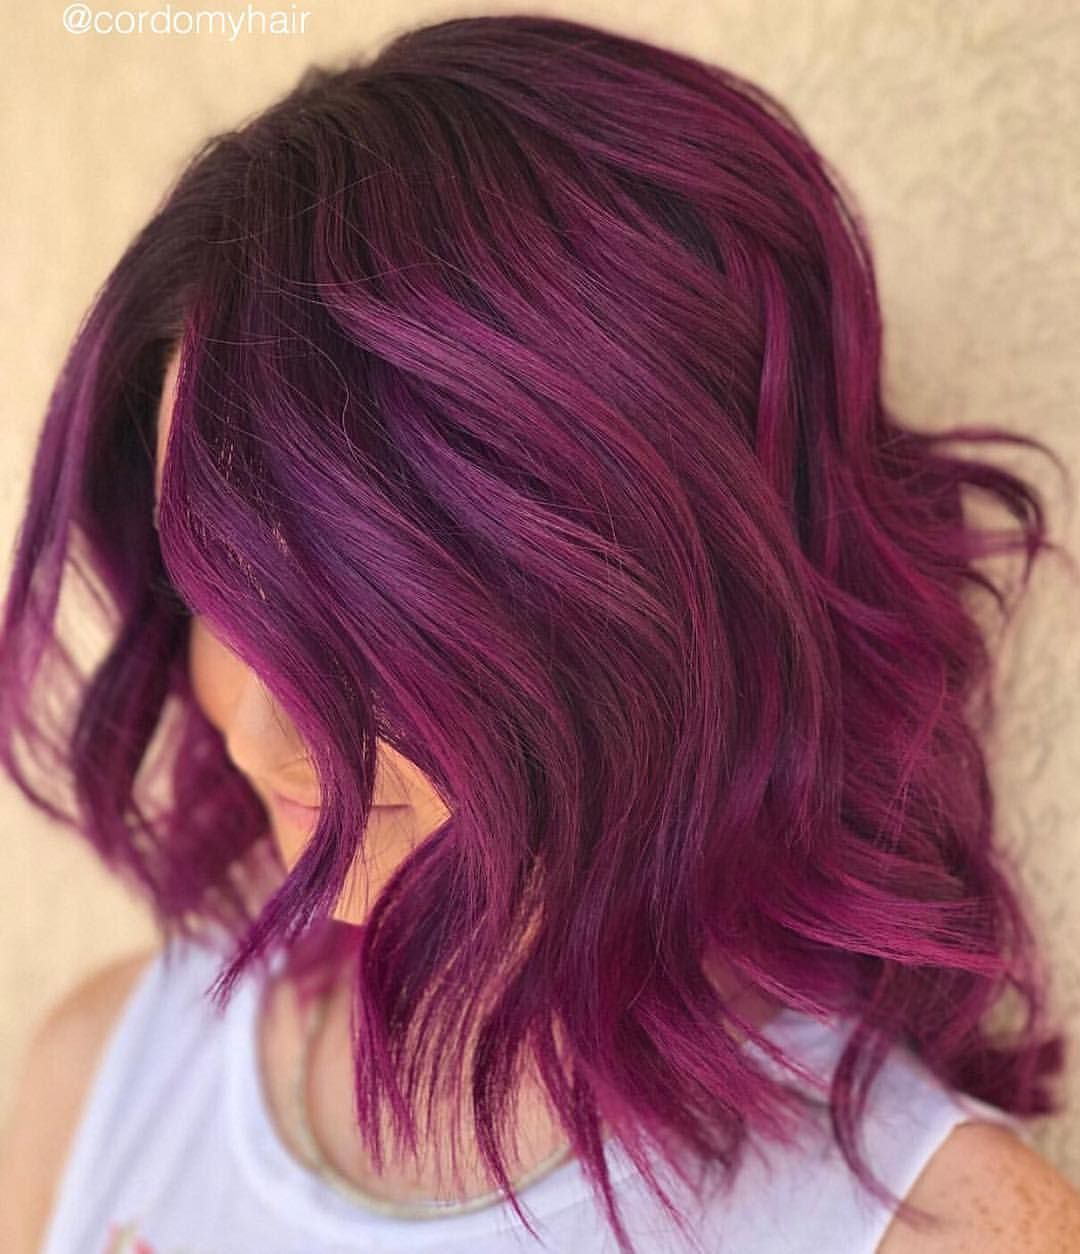 K likes comments hair makeup nails blogger